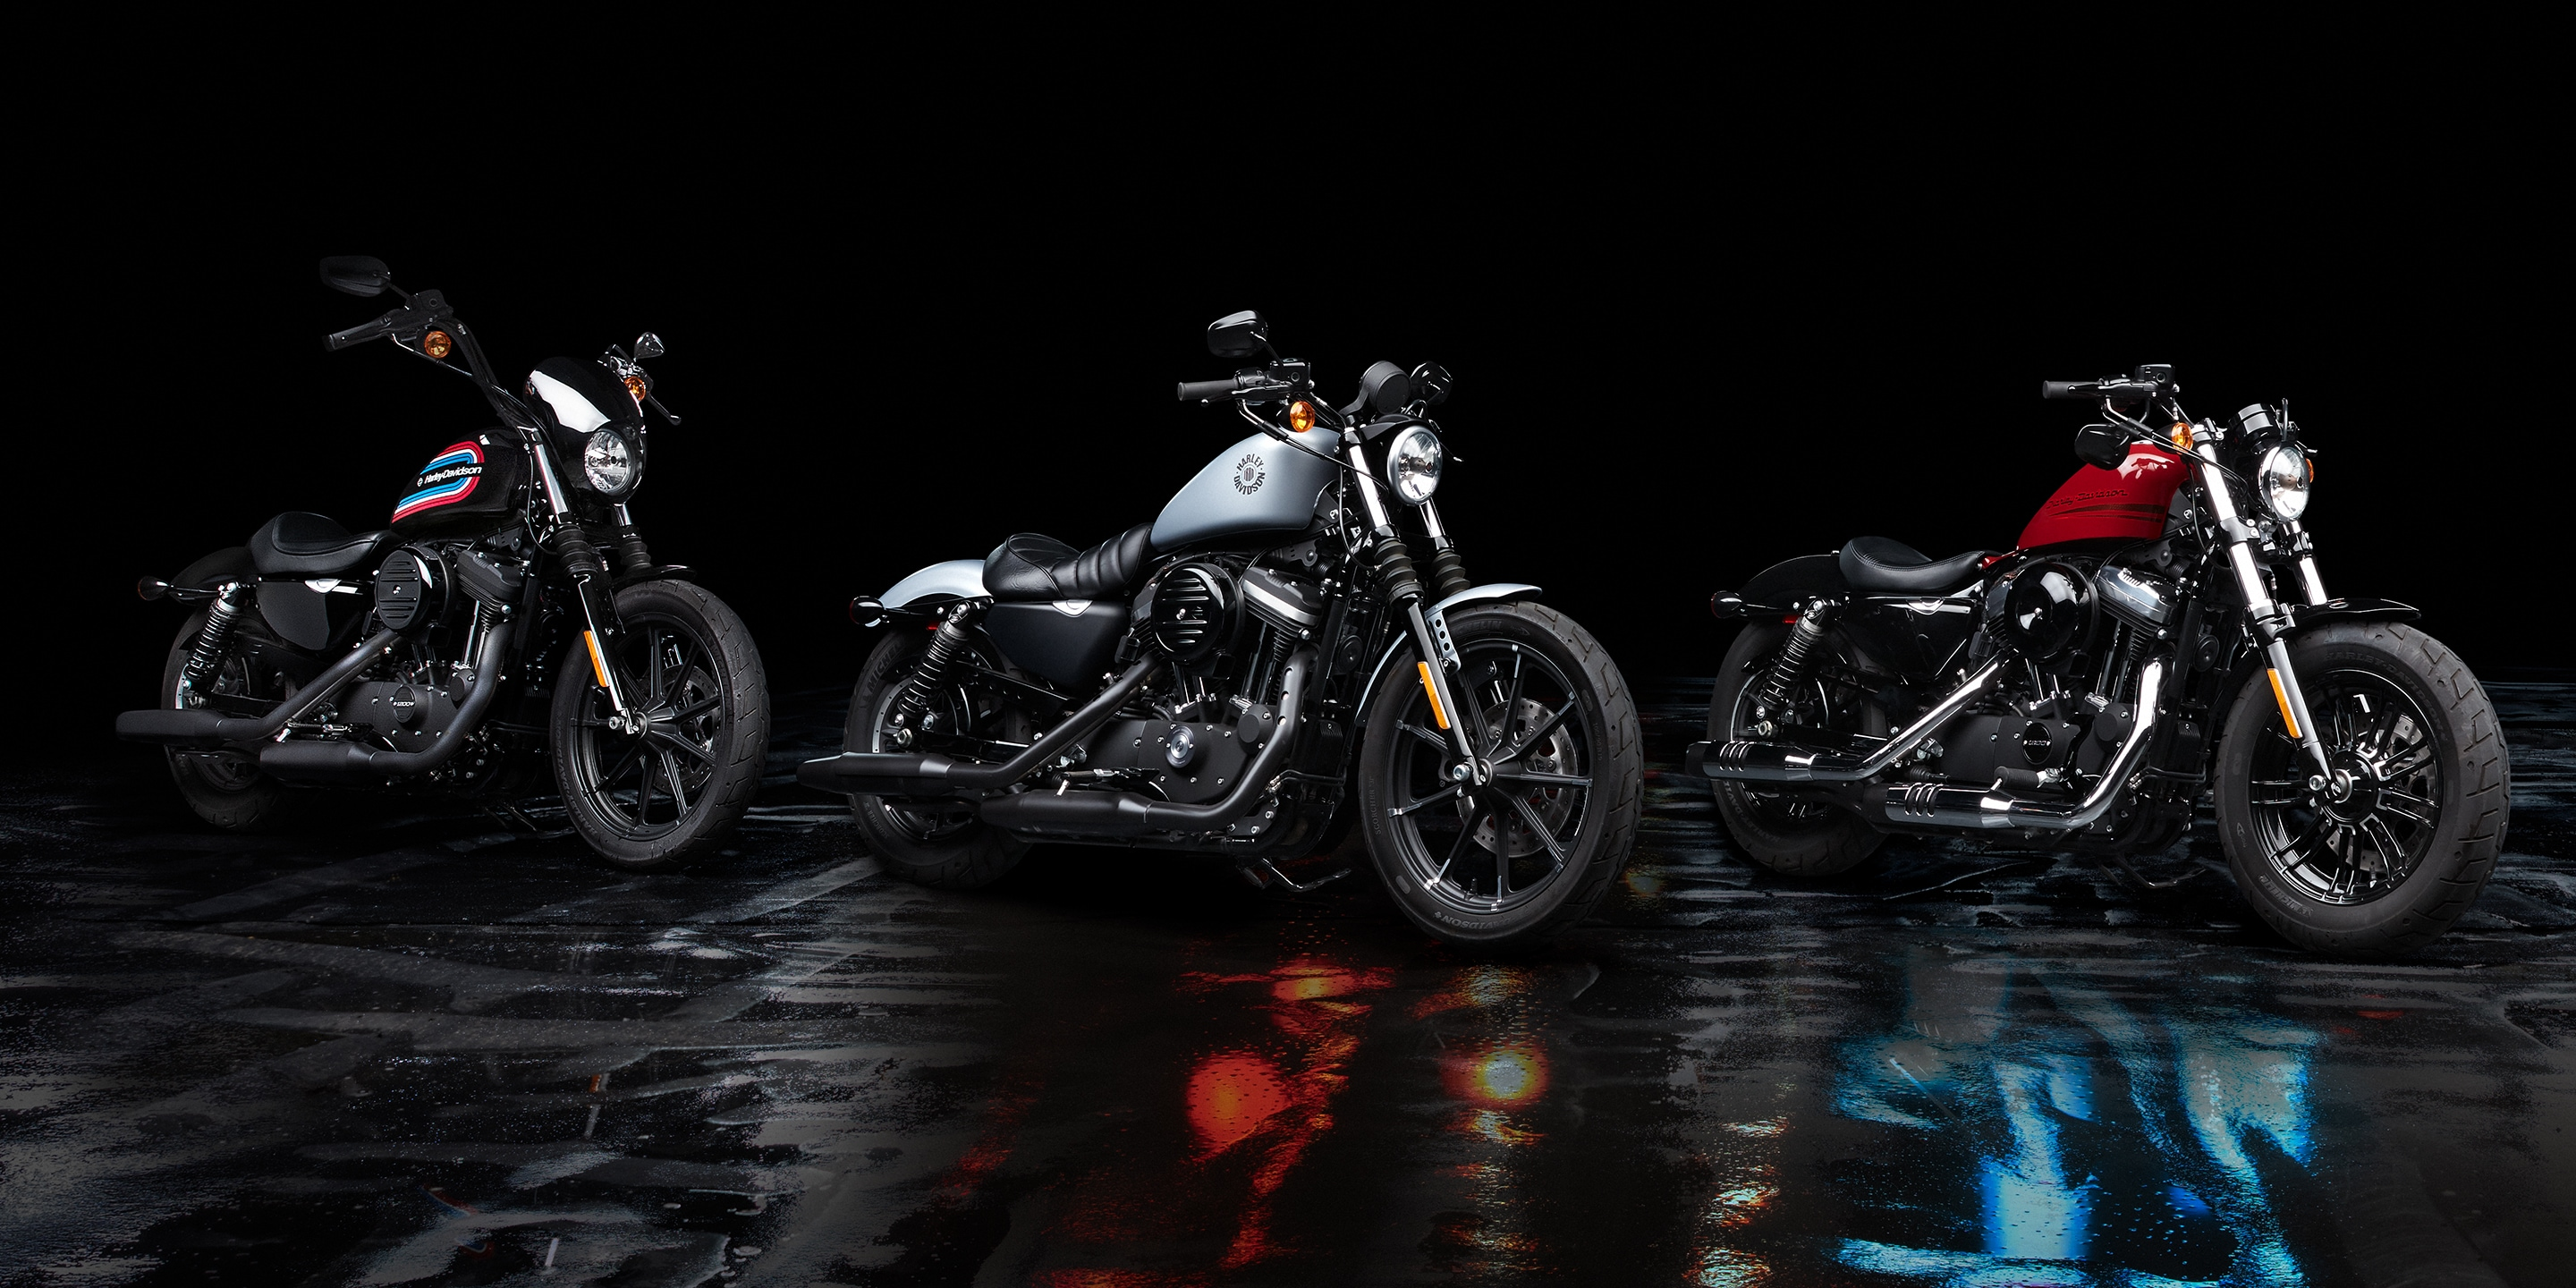 2020 H-D Sportster Motorcycles parked in front of a building